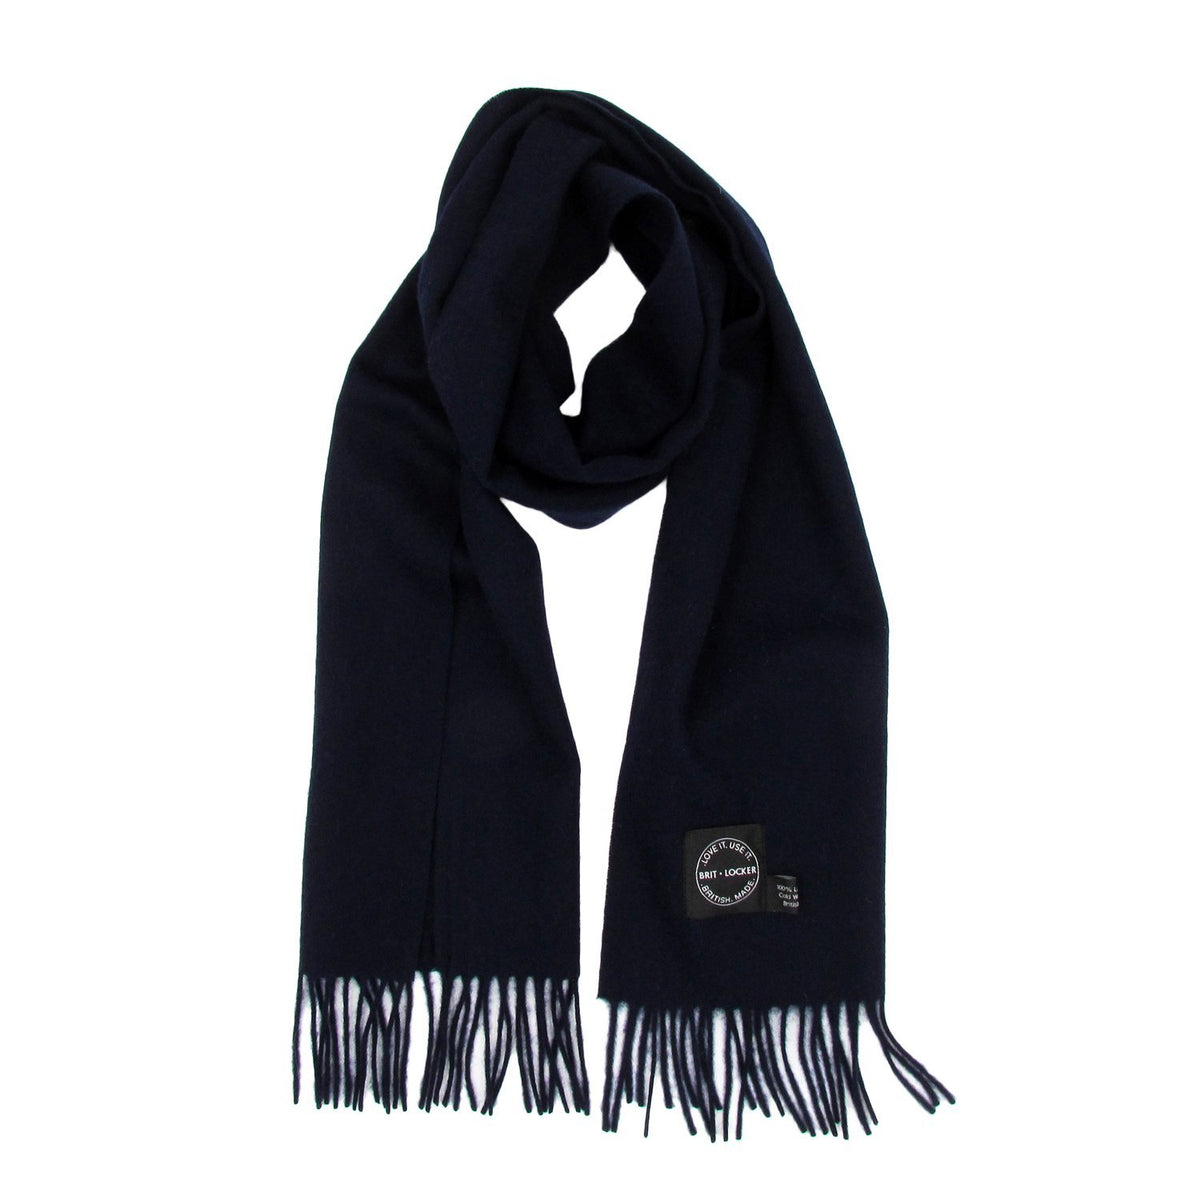 Dark Blue Lambswool Scarf - Made in Britain - BRIT LOCKER